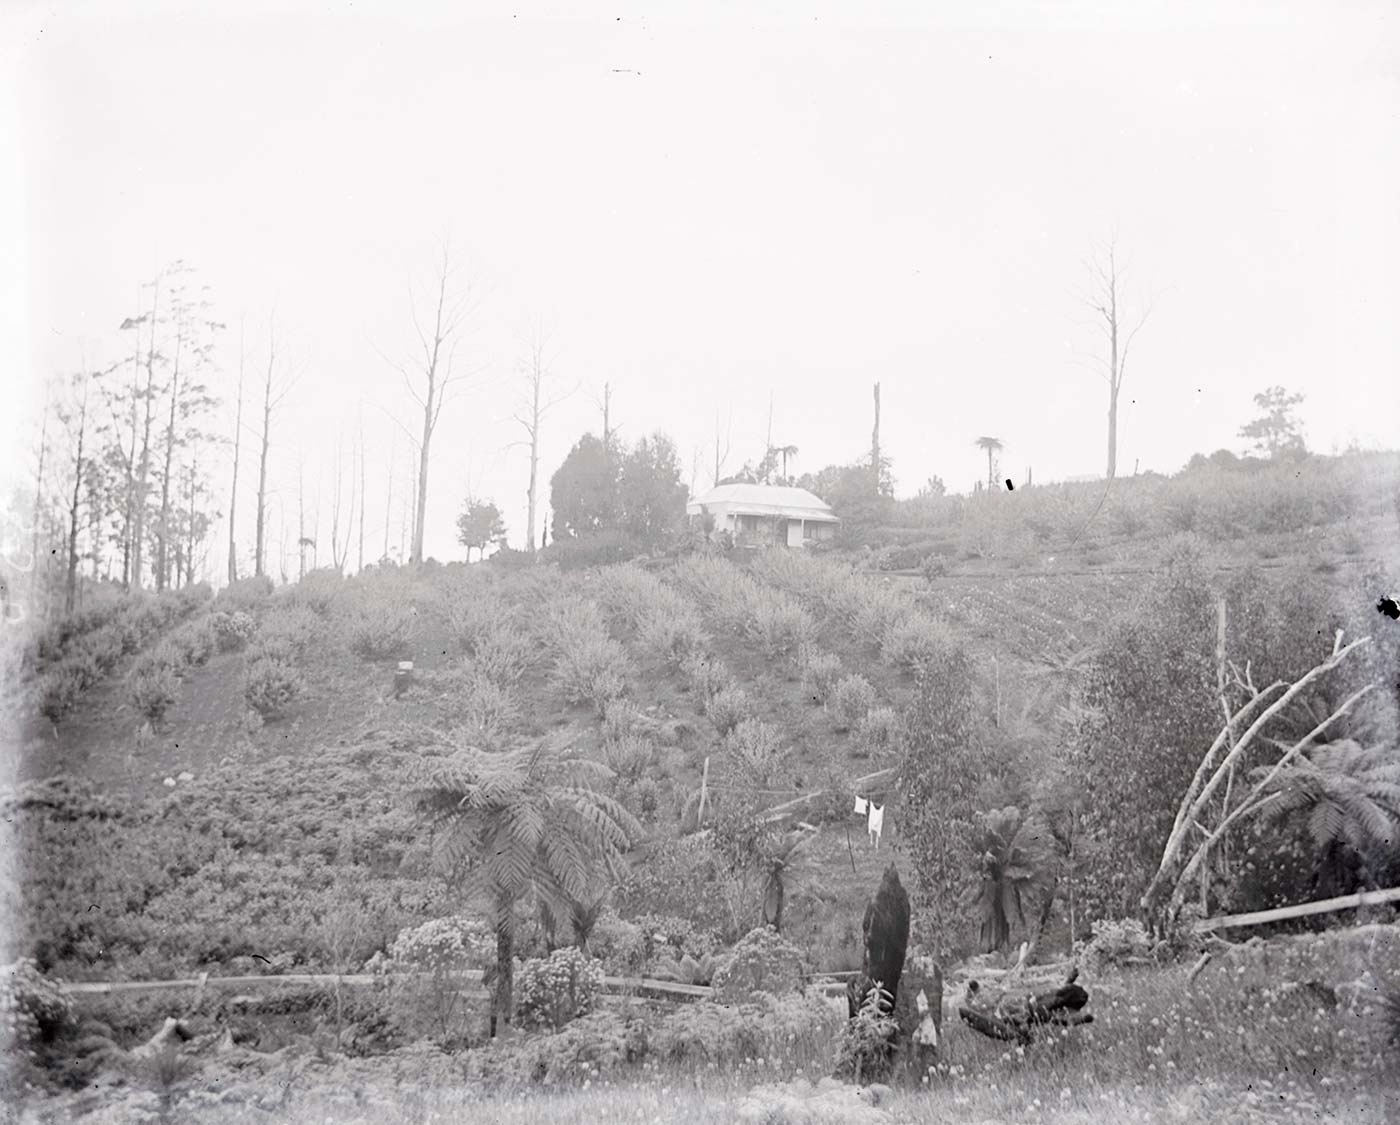 A photographic glass plate negative showing a small single-story house on a slight hill surrounded by rows of crops. The horizon is sloped, and there are ferns in the background. - click to view larger image